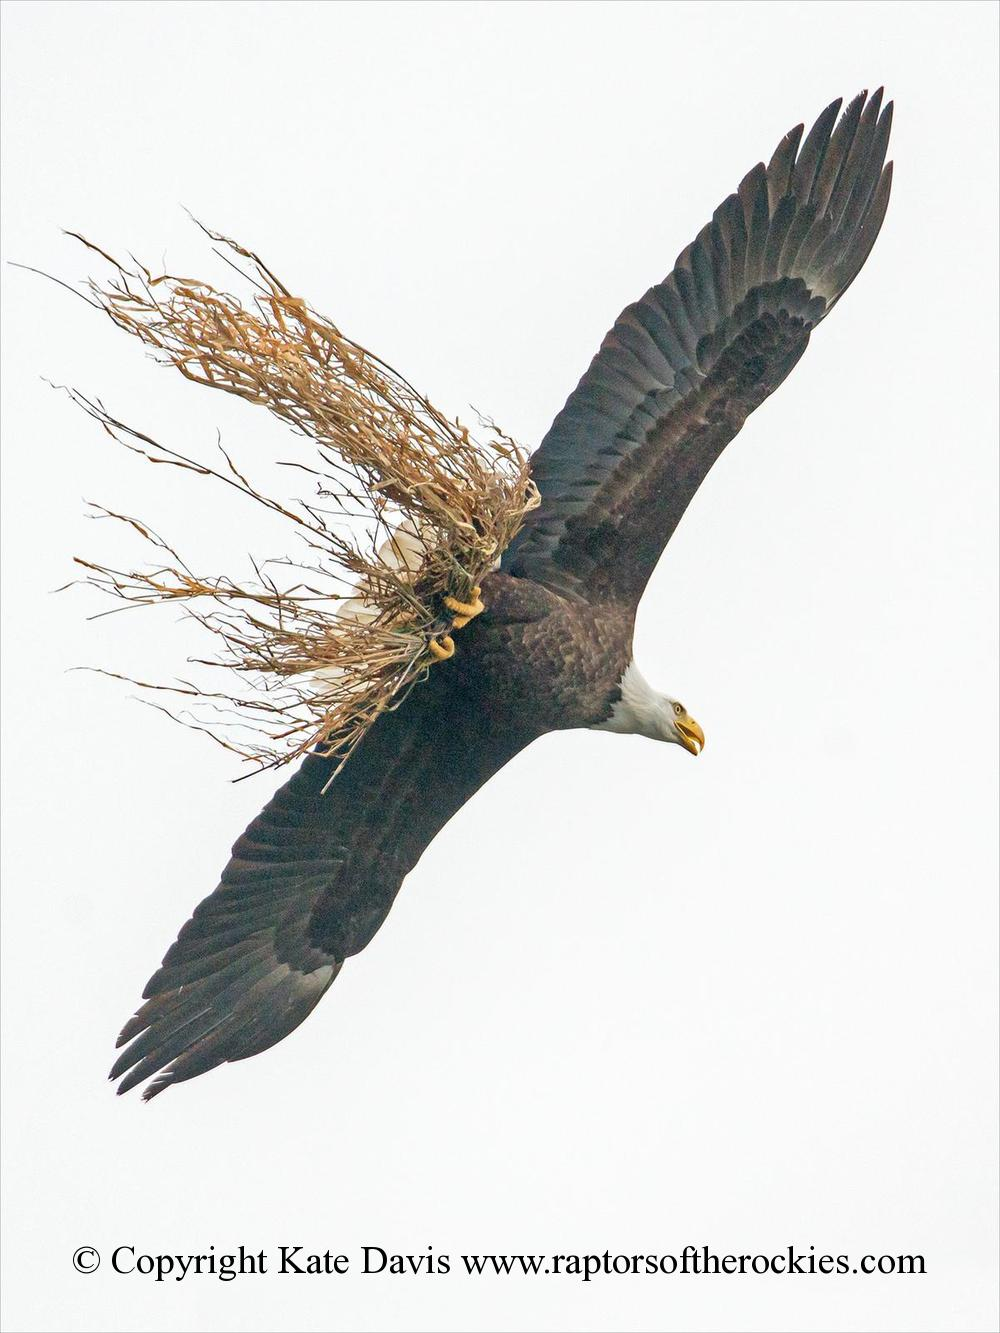 American Bald Eagle - Hauling Grass - Golden Eagle - Bald Eagle hauling grass to the nest